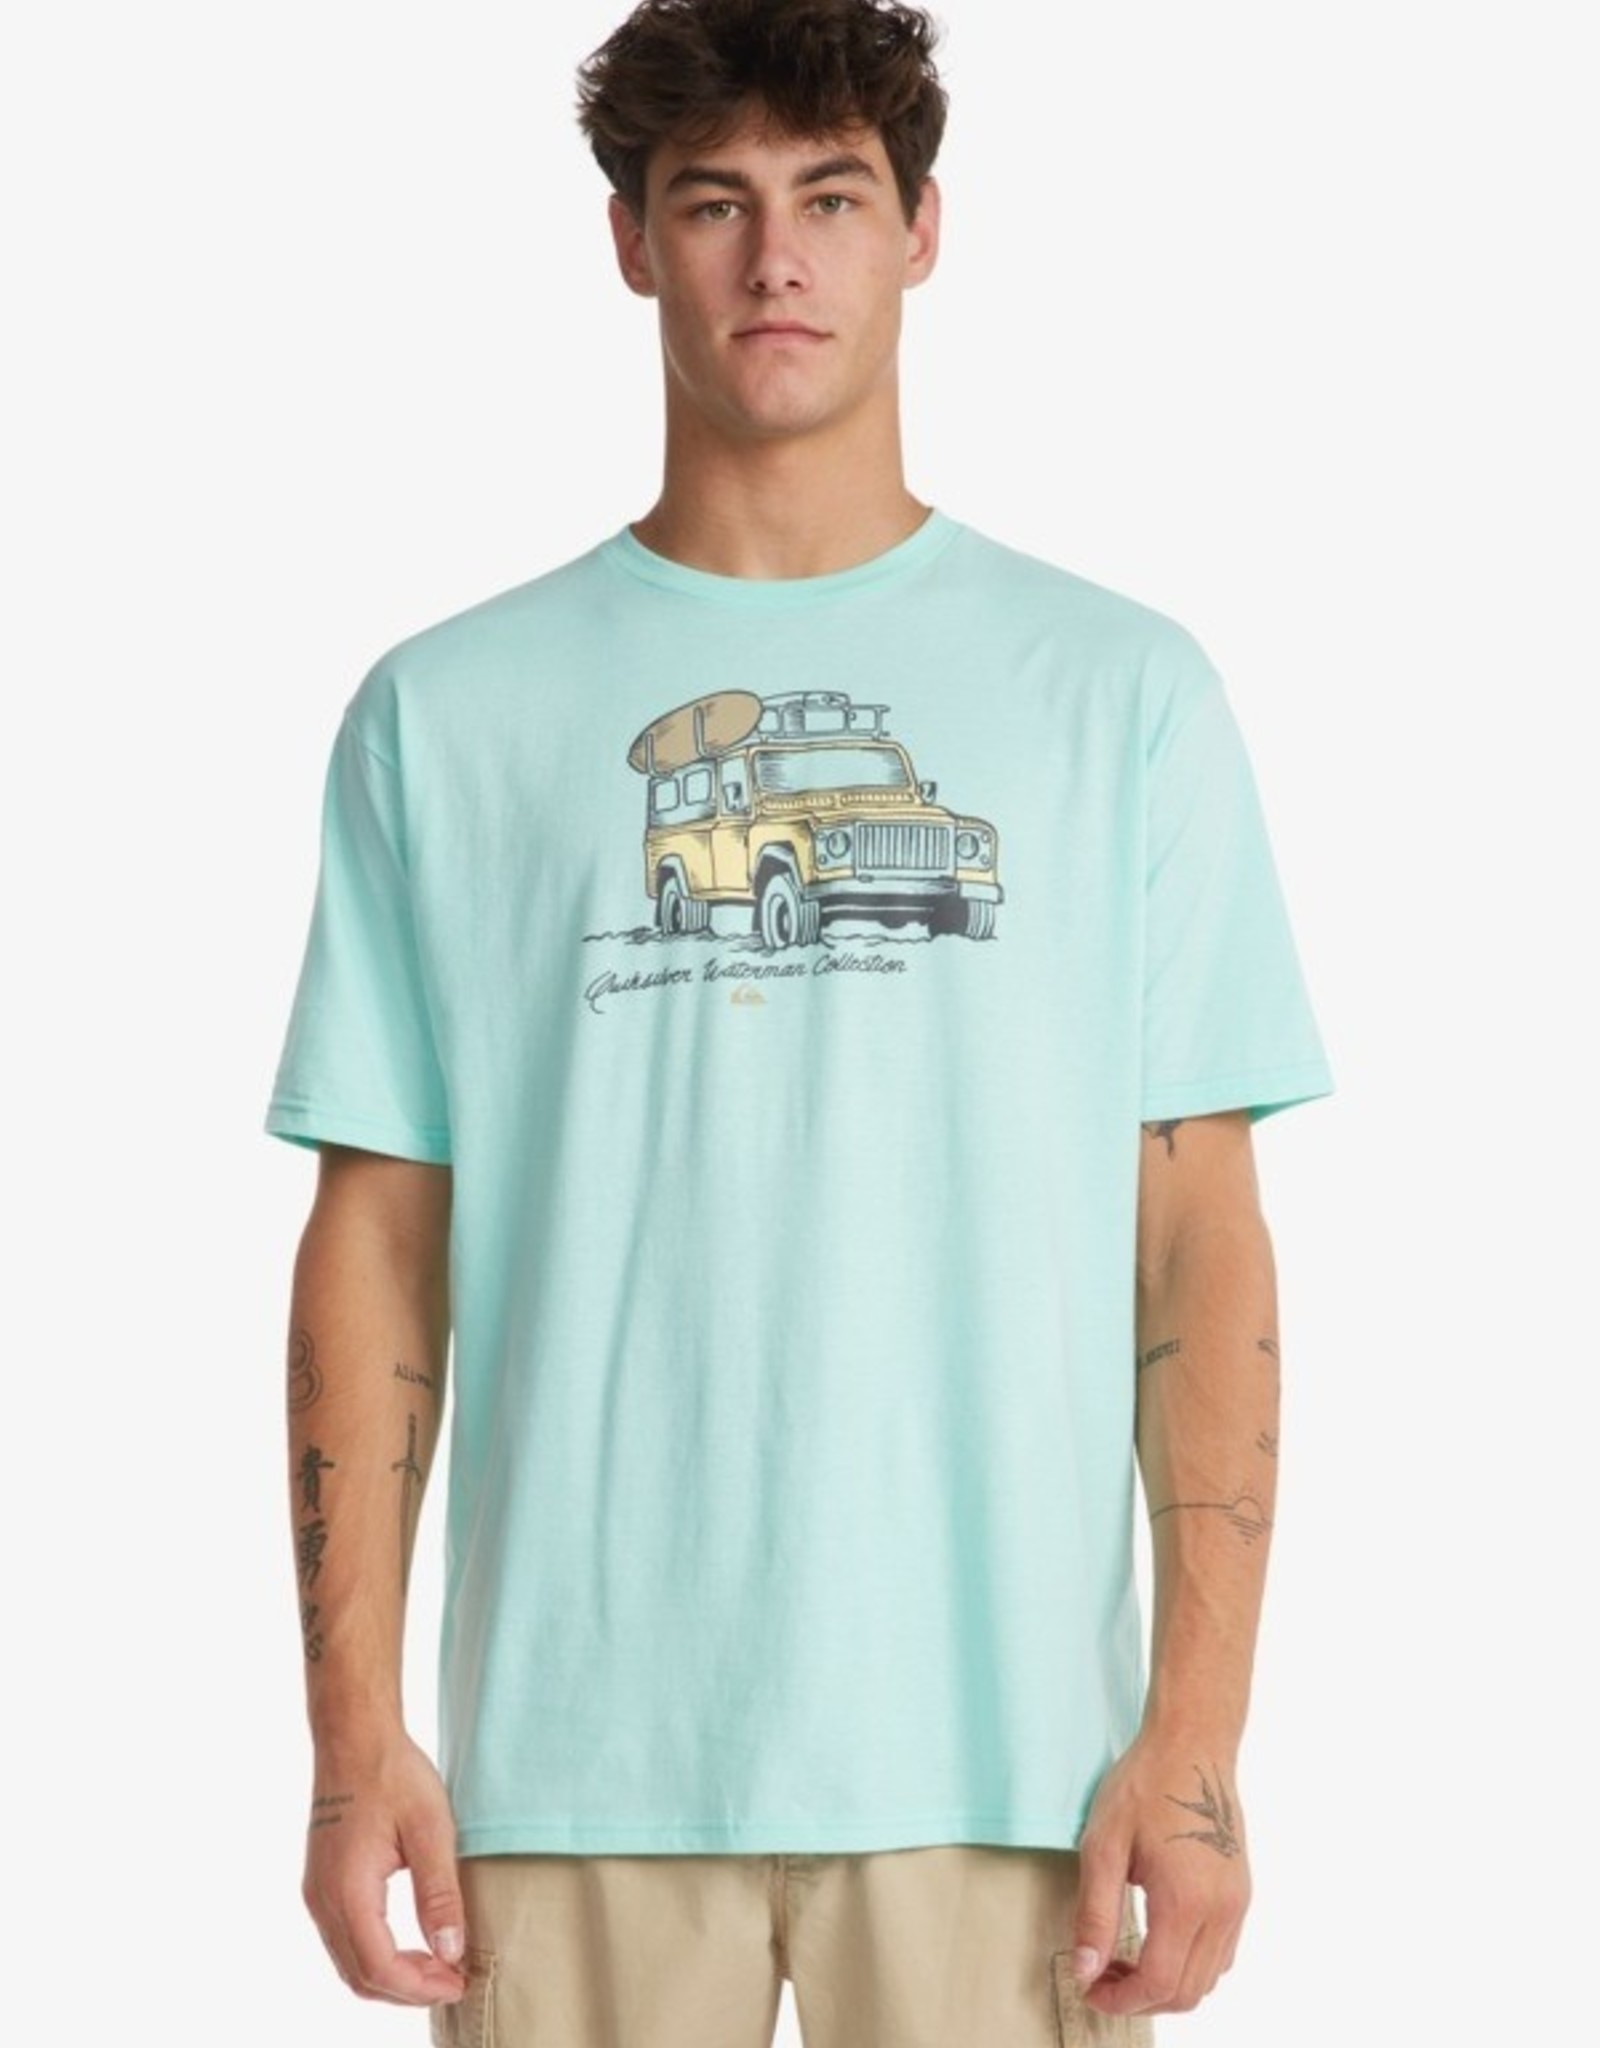 Quiksilver Private Road Tee